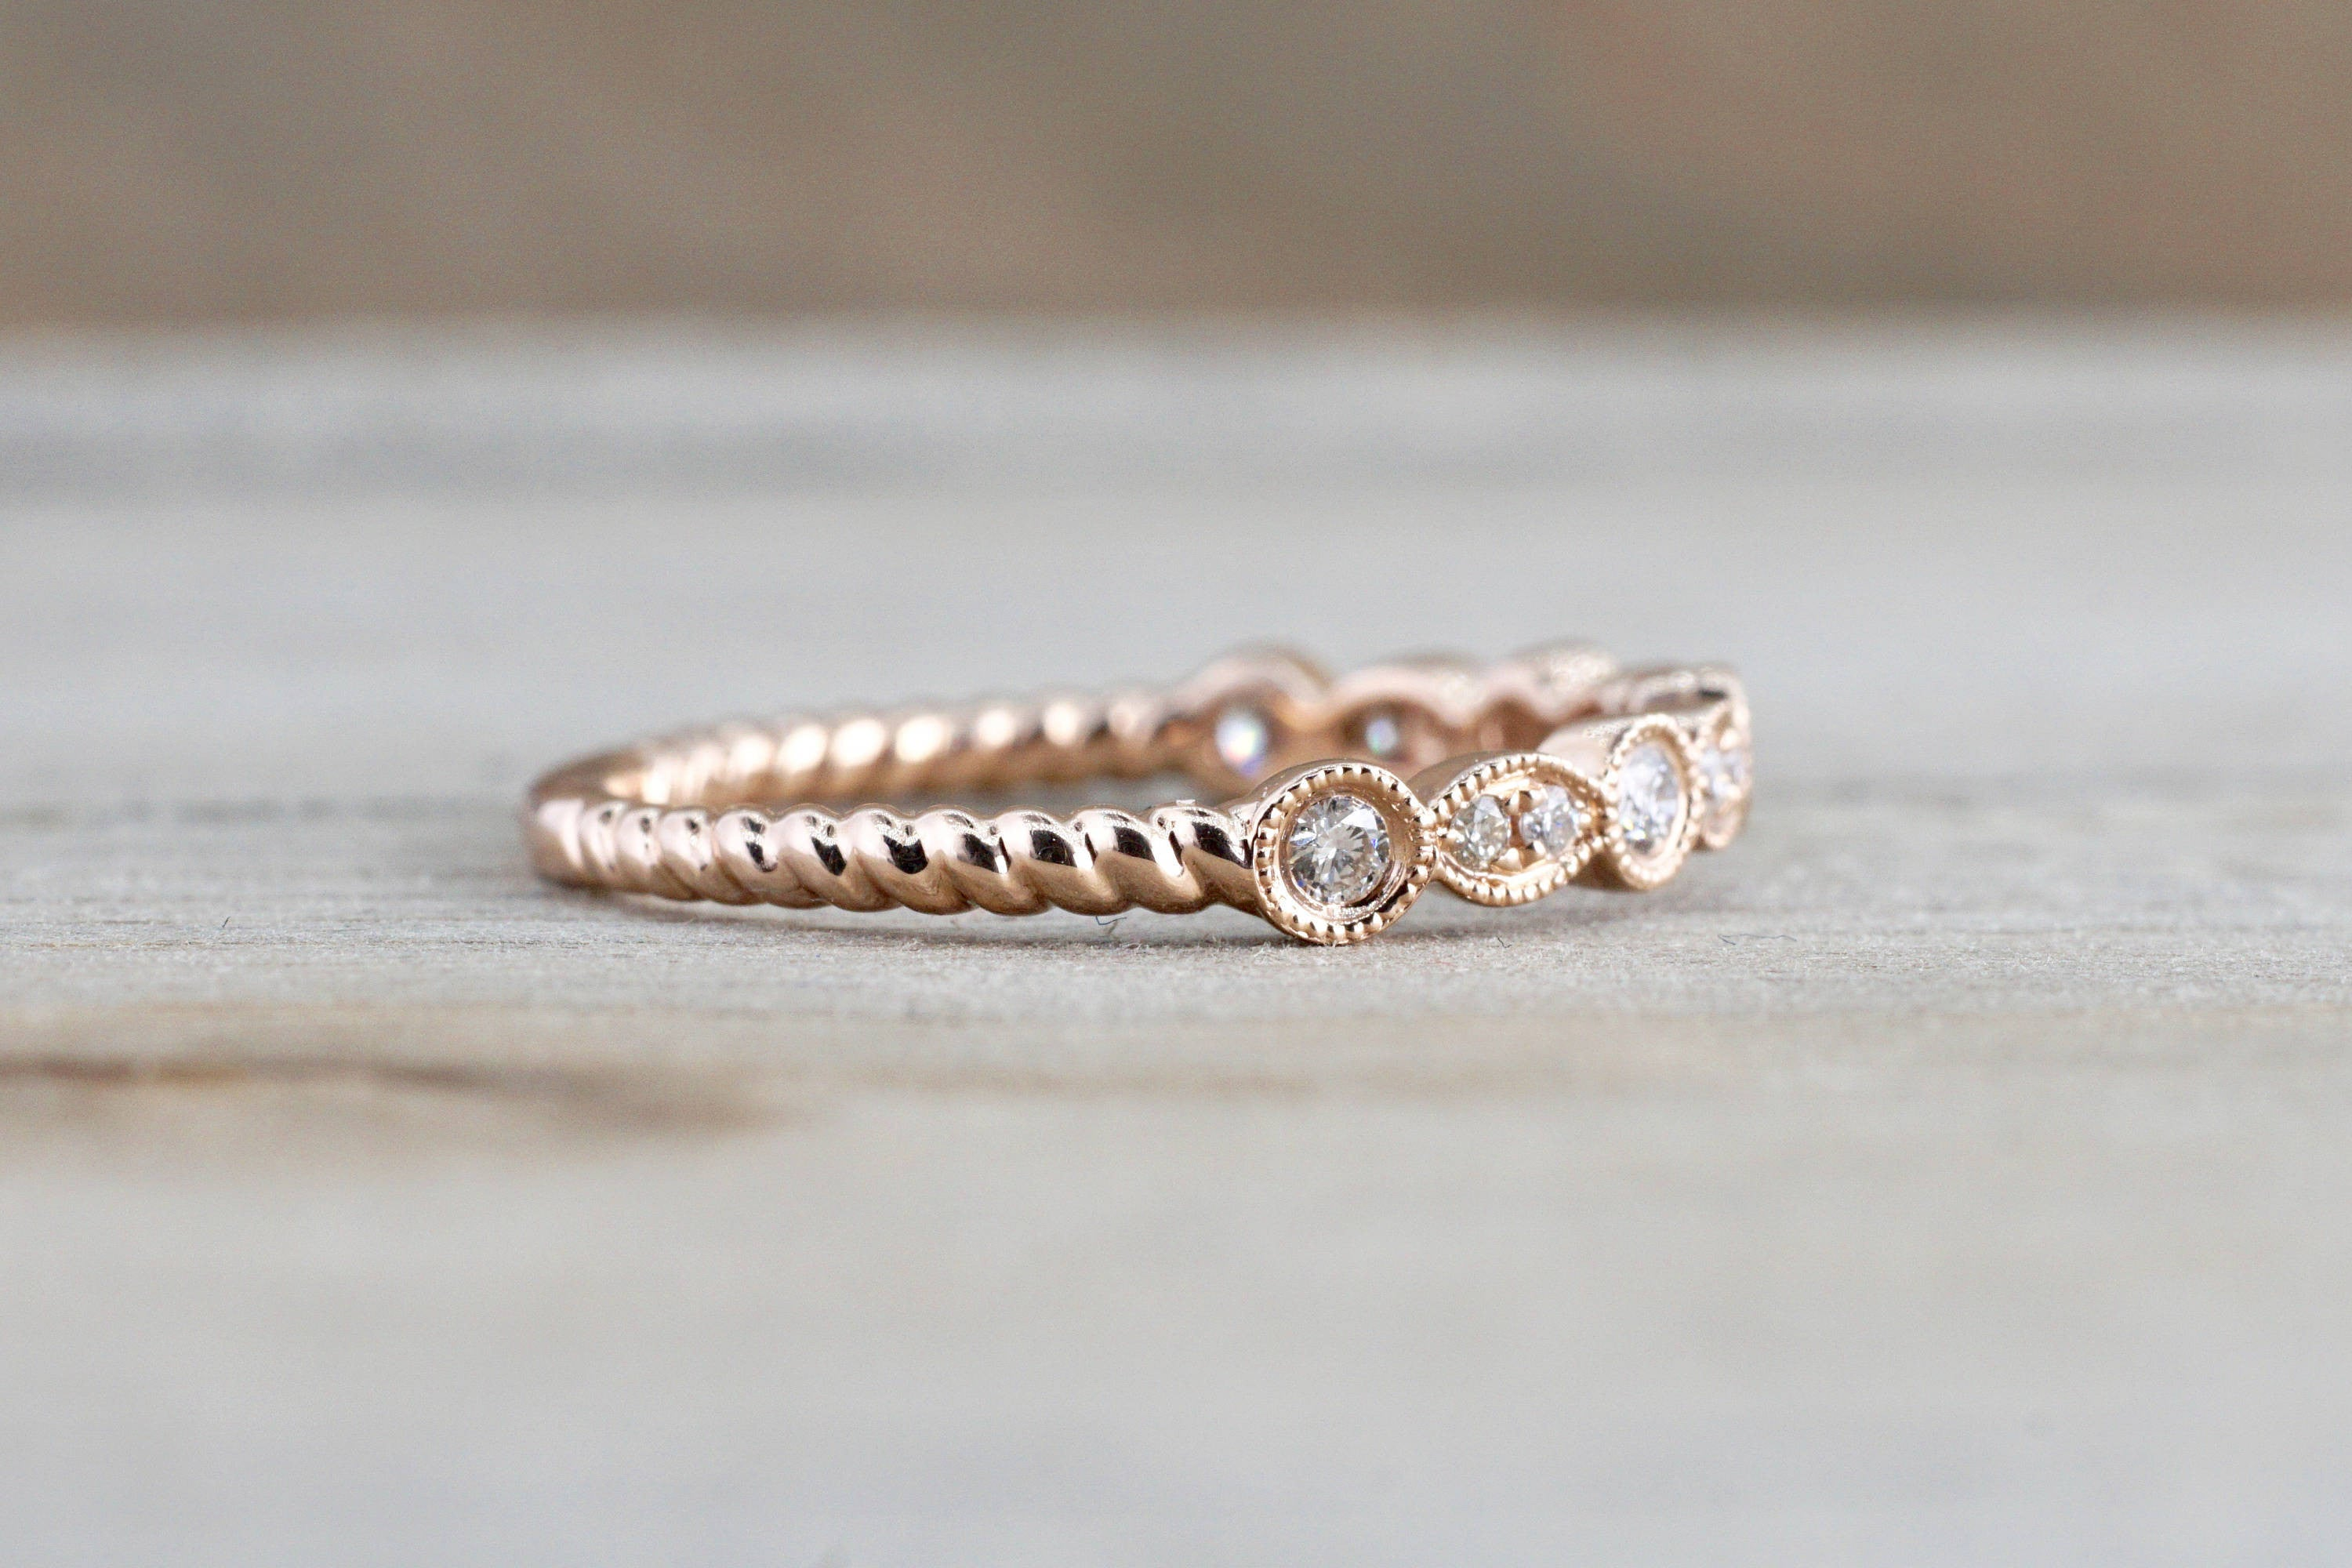 anniversary details from band ringscollection bands com shapediamond buy wedding rose gold shape diamond now etsy ori twisted